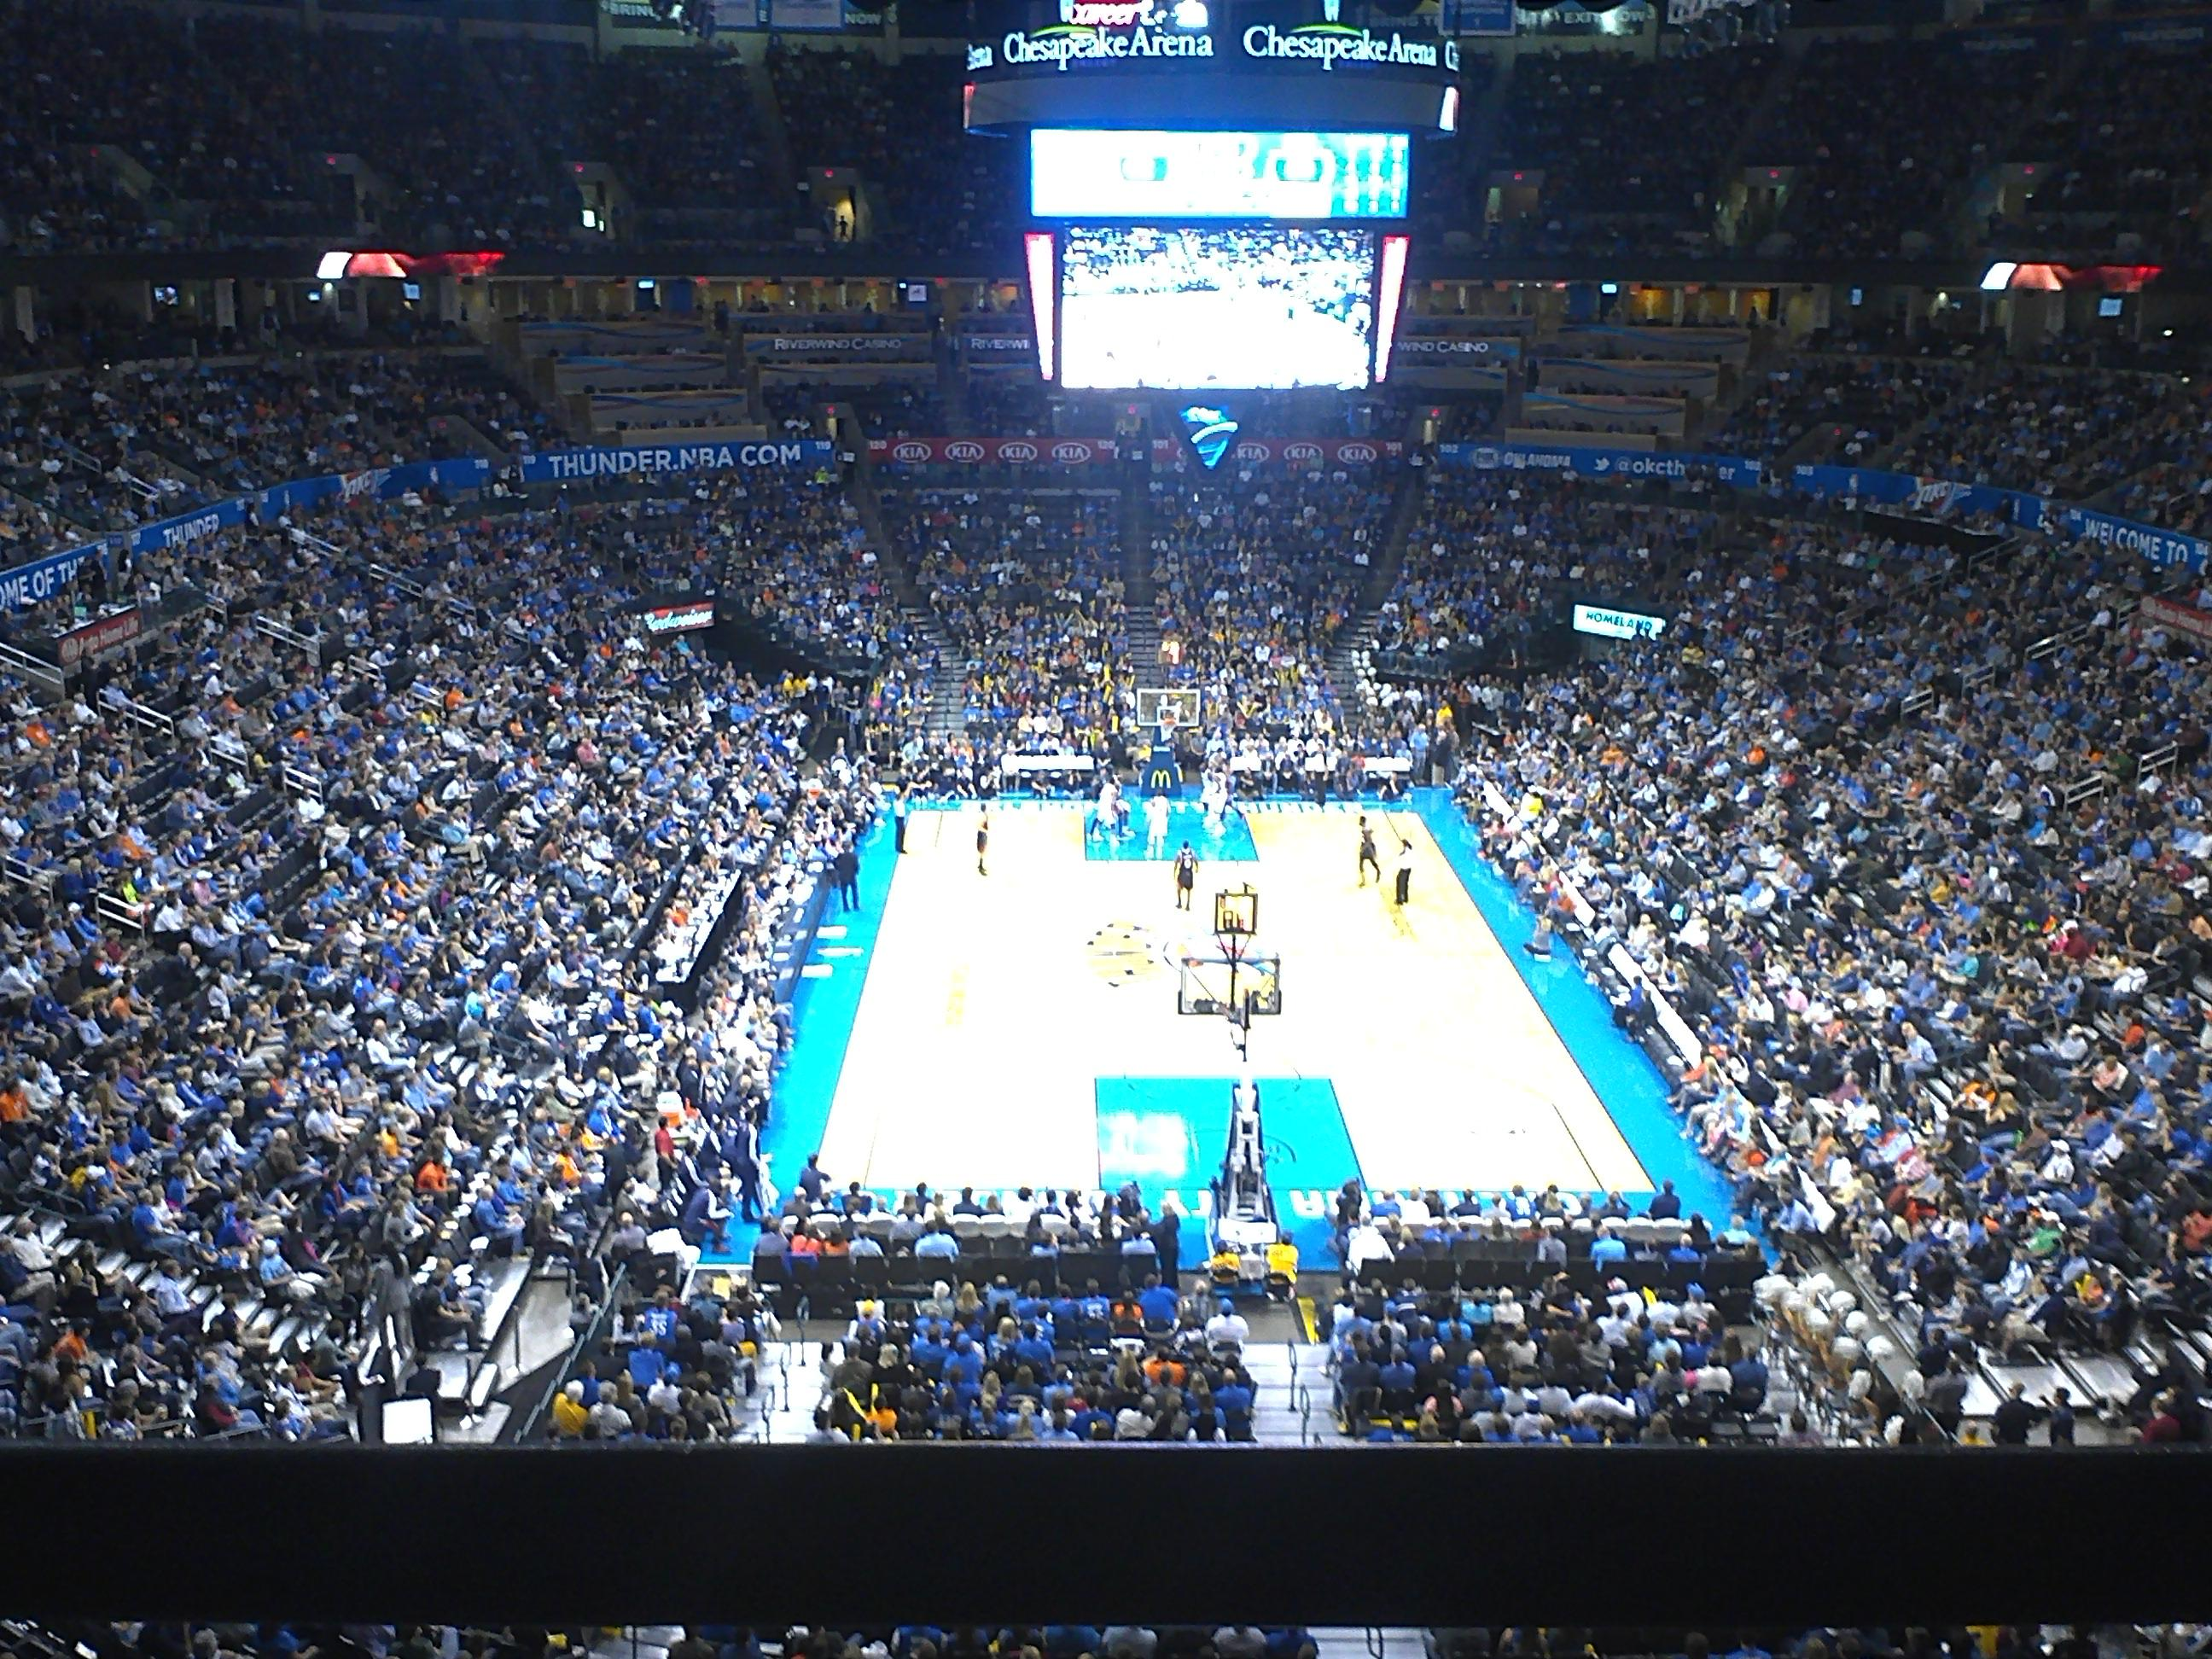 Chesapeake Energy Arena Section 316 Row A Seat 3-4